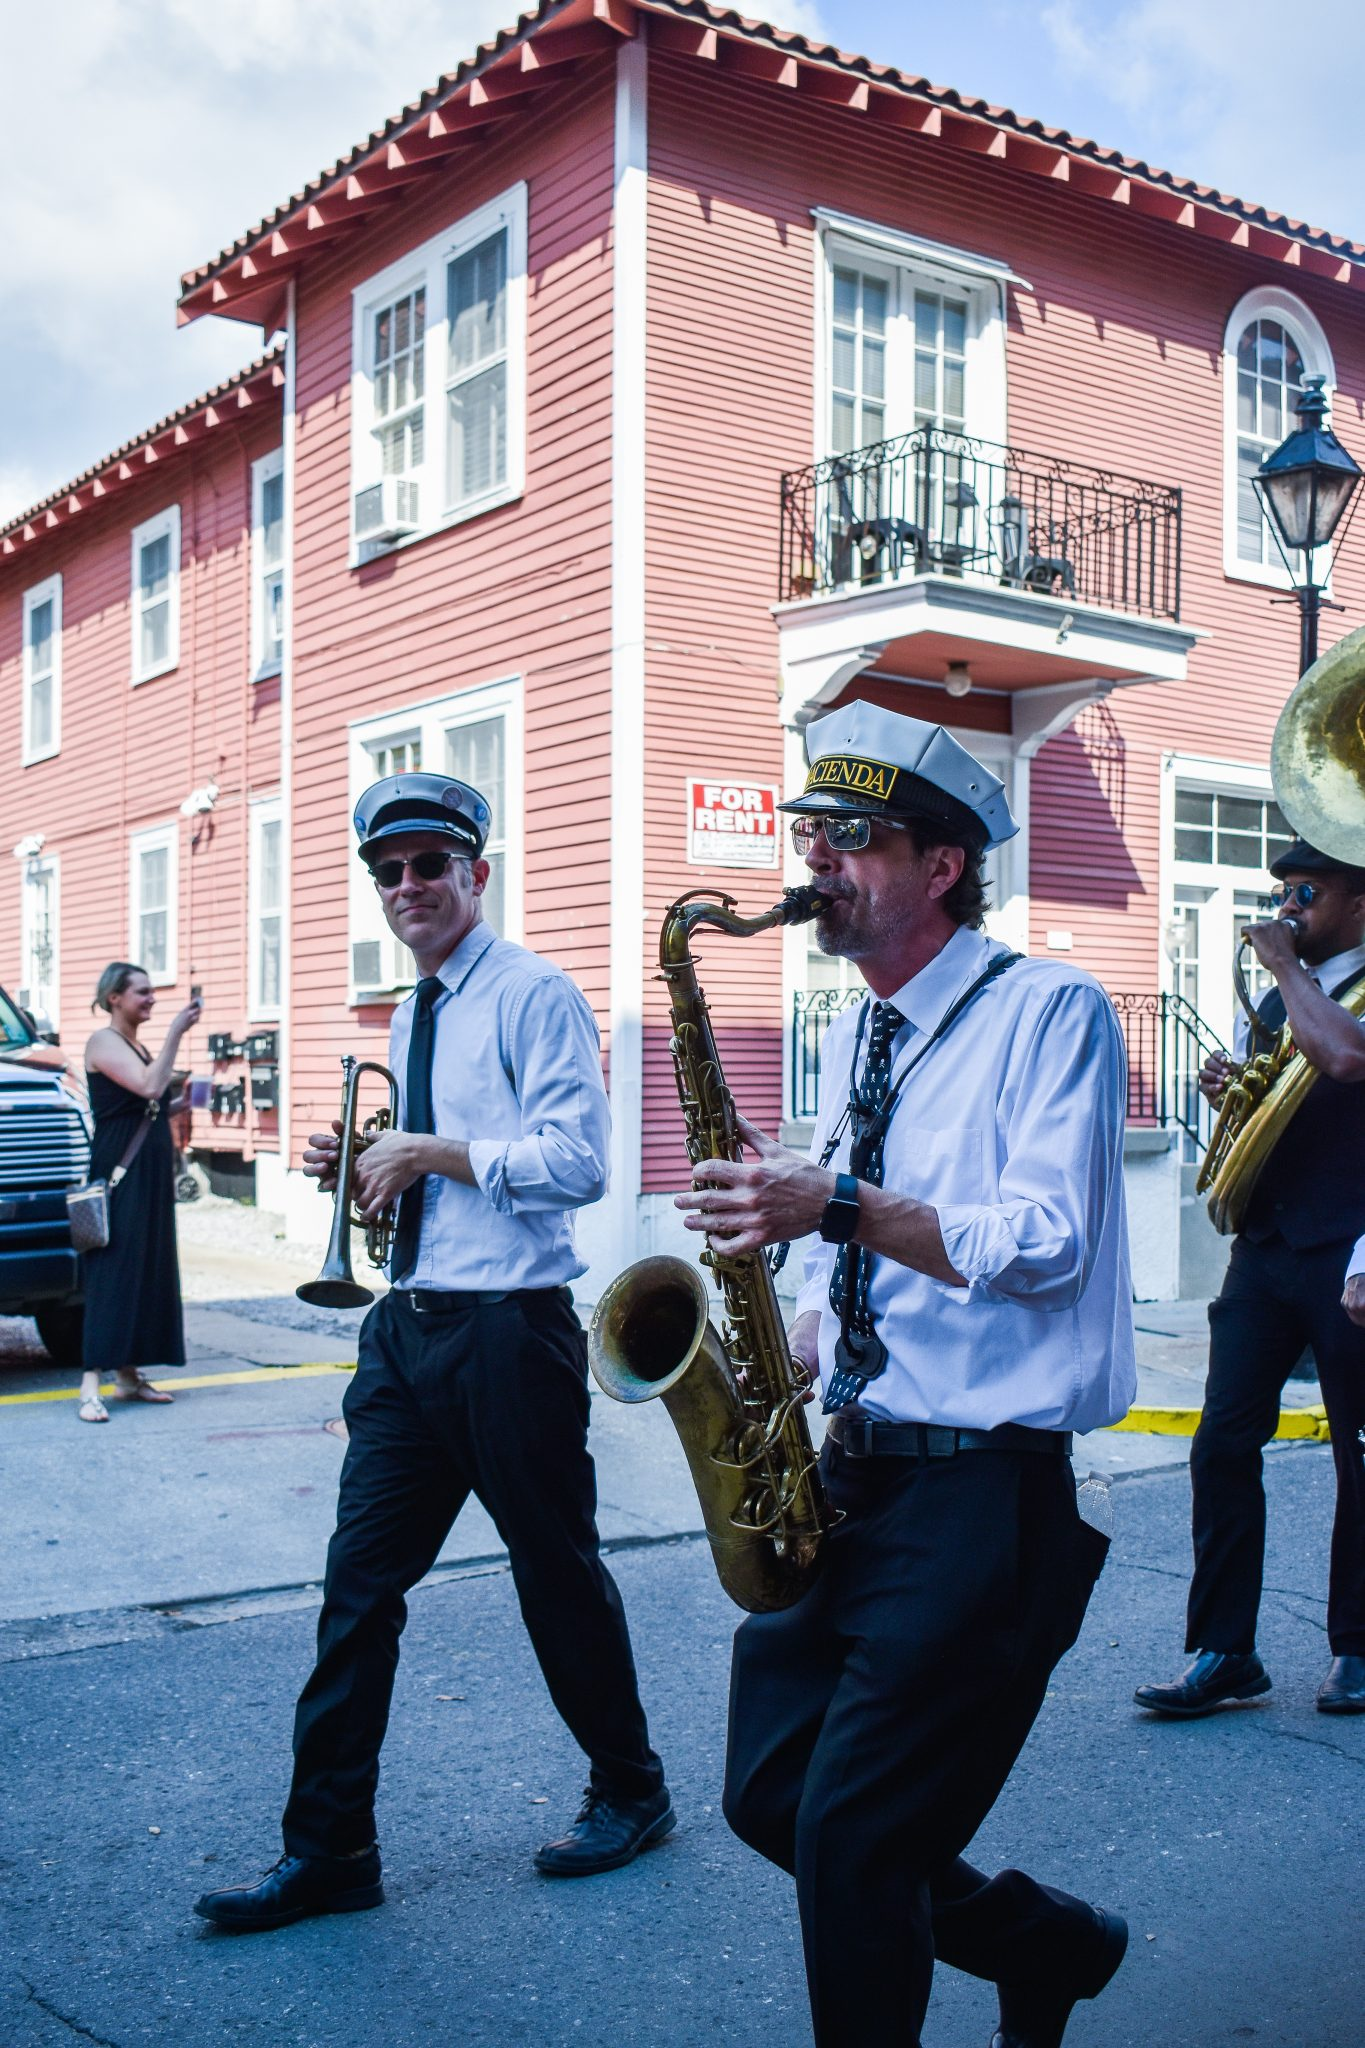 5 Must Explore NEighborhoods in New Orleans